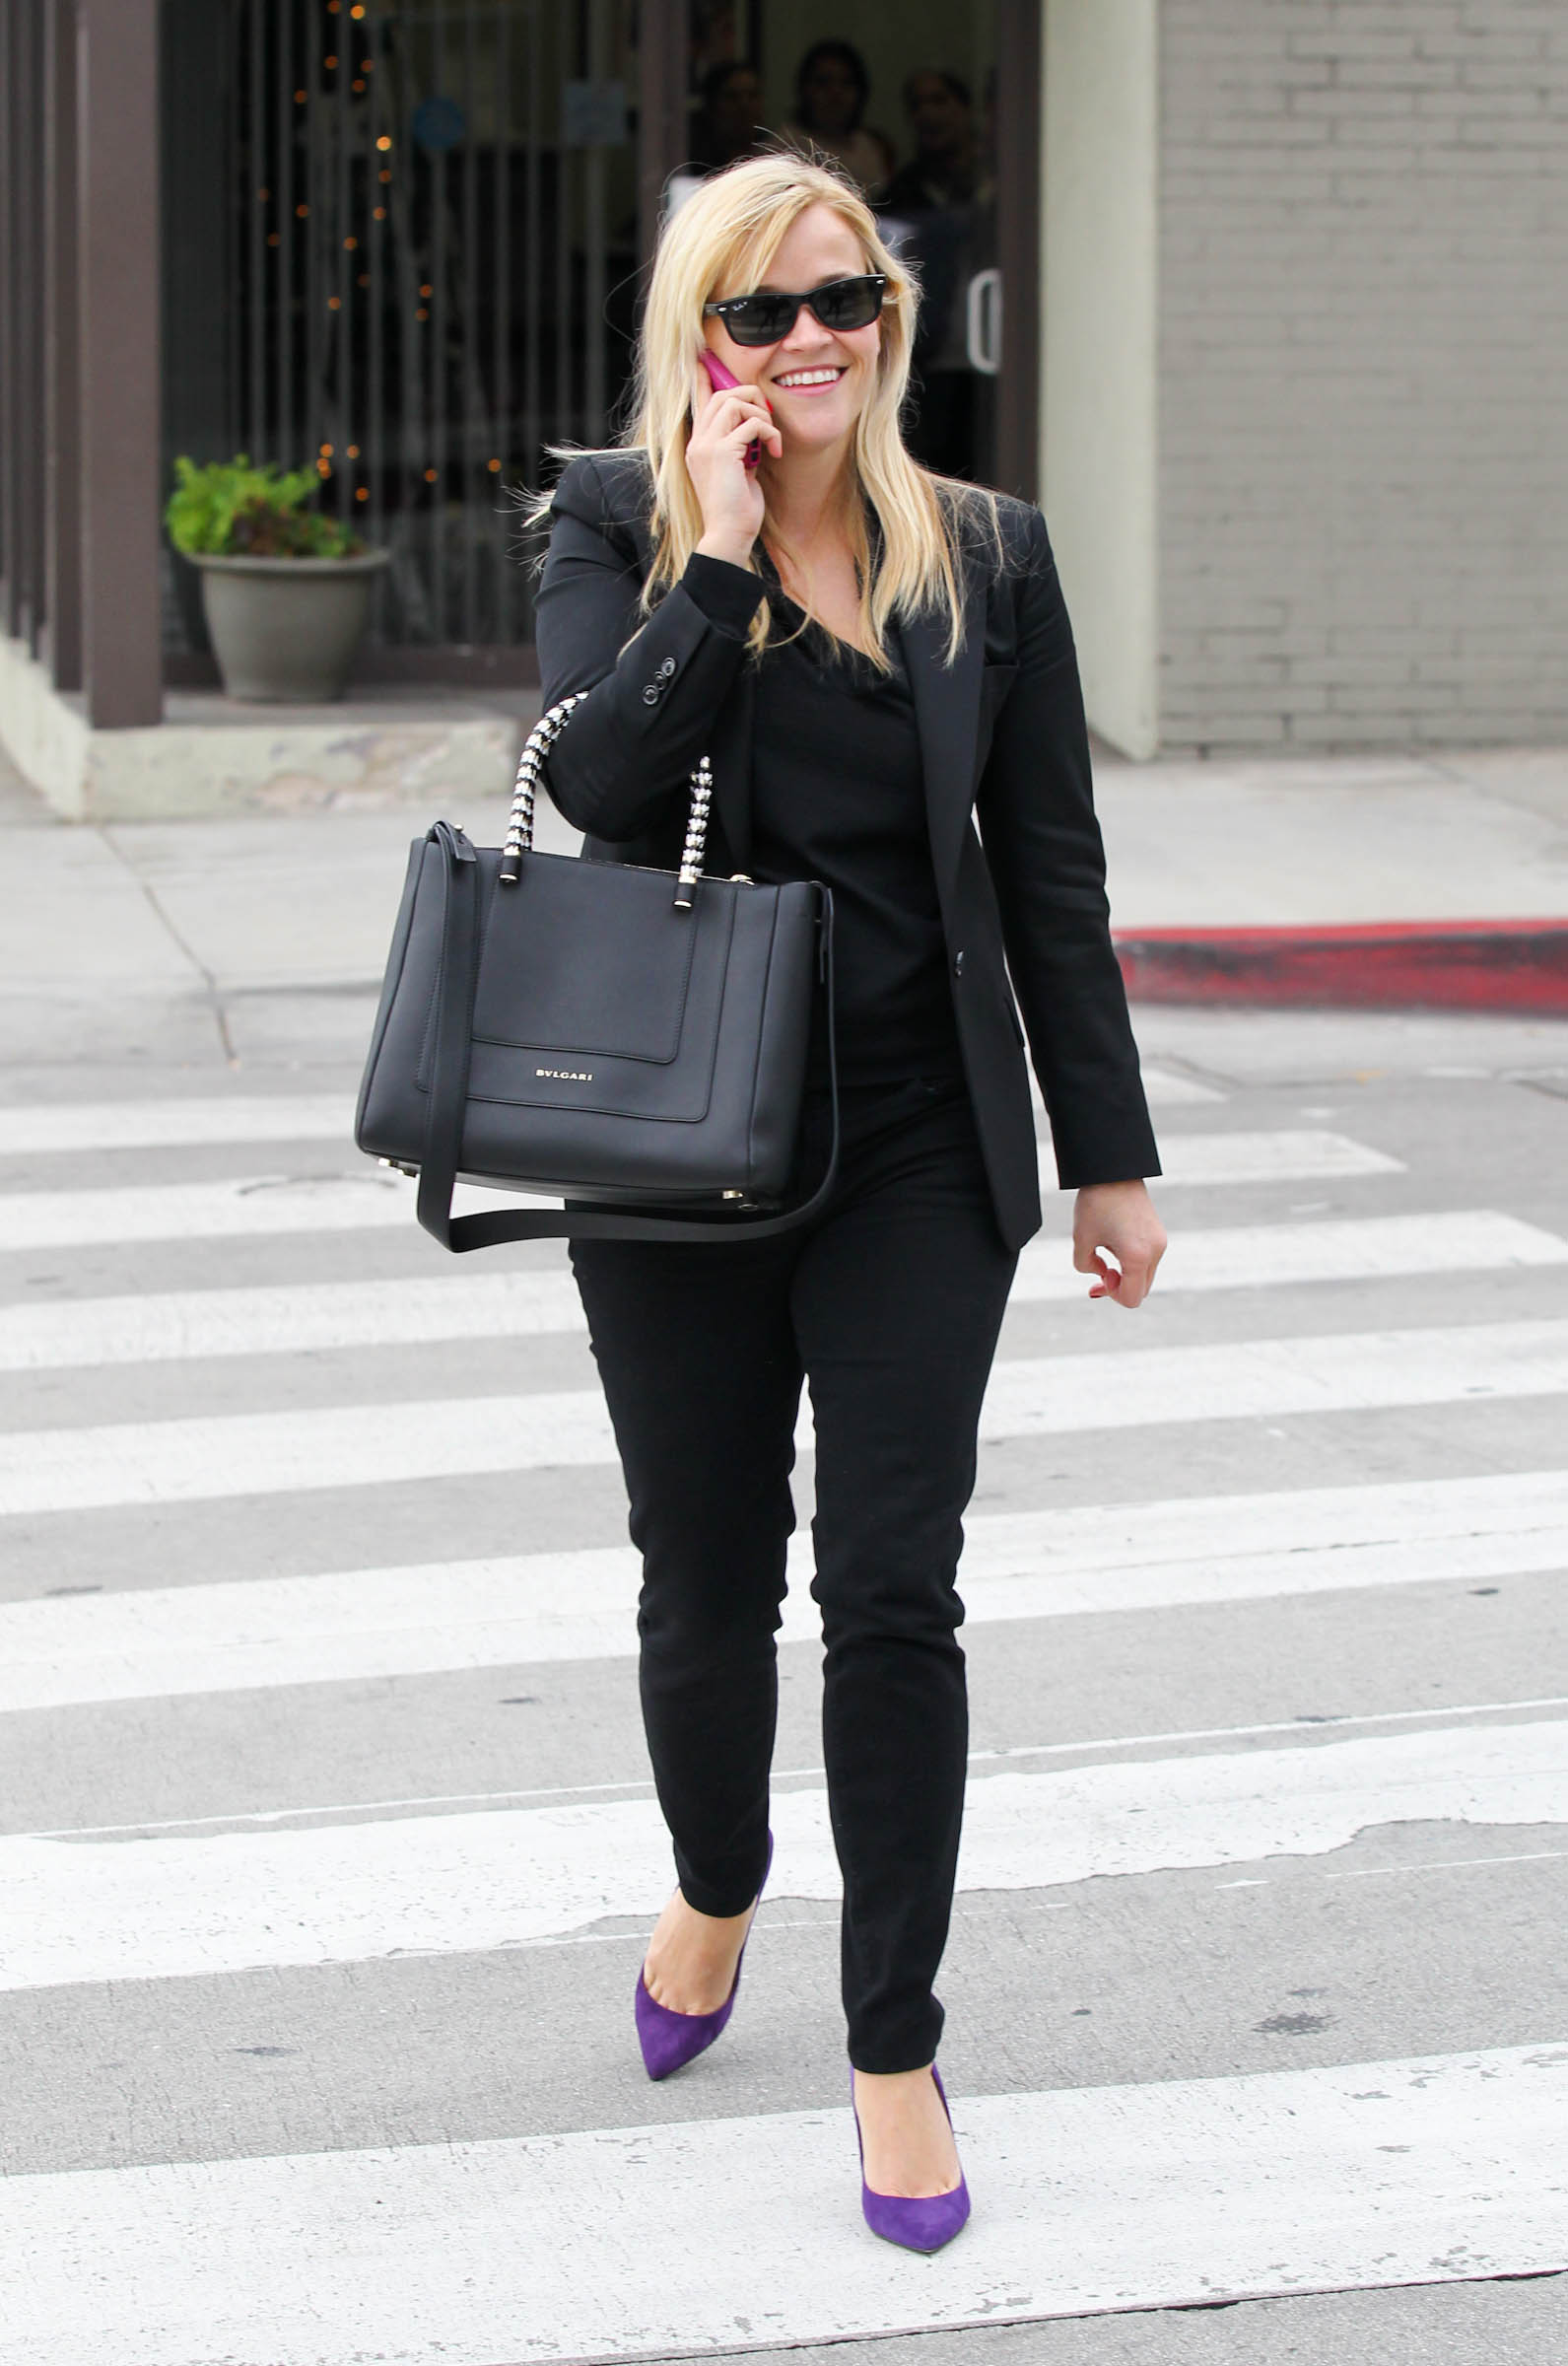 Reese Witherspoon wore purple pumps during a shopping day.